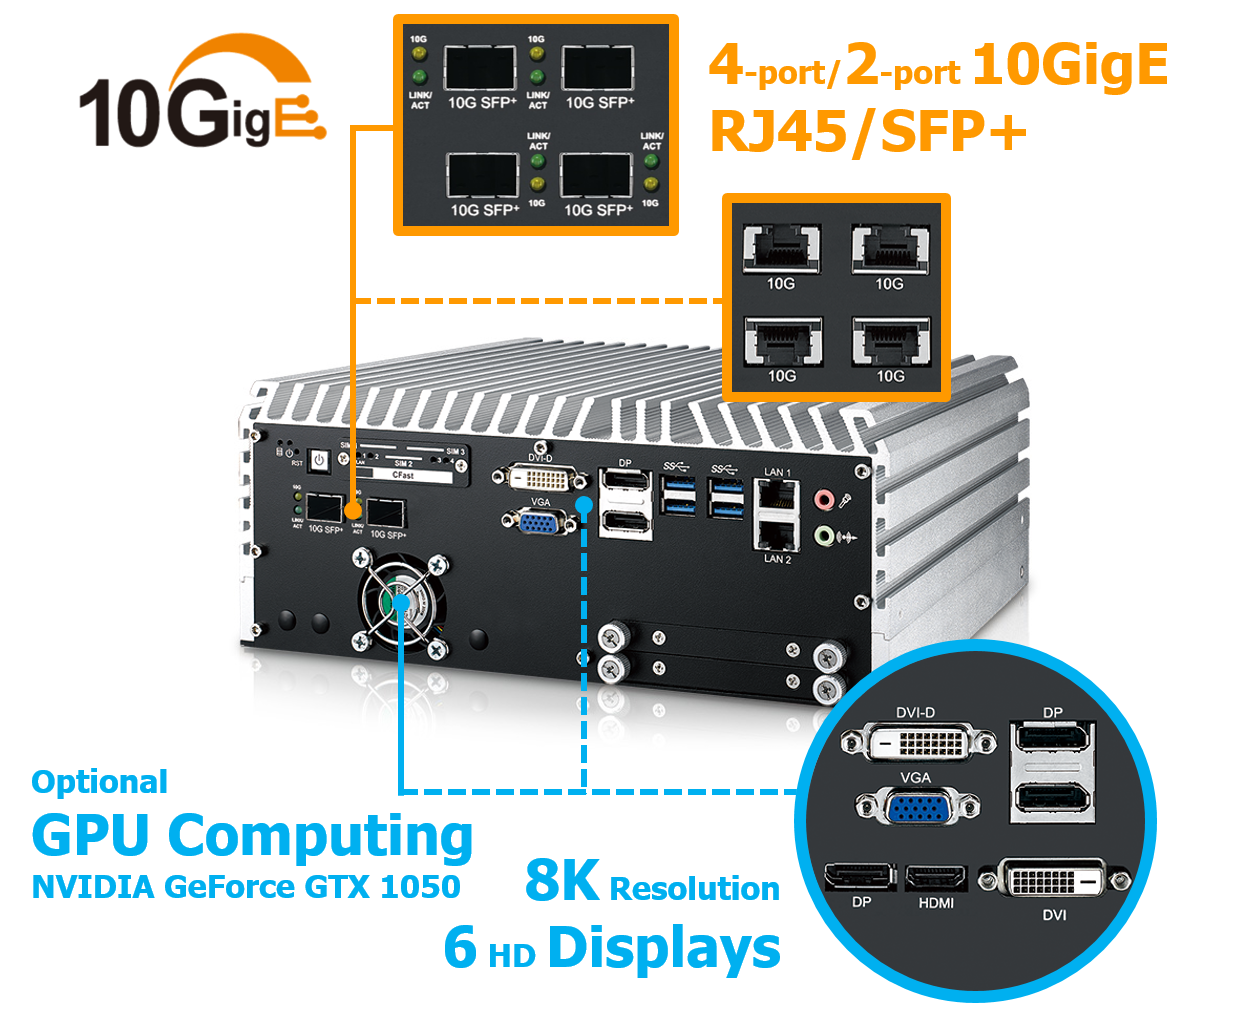 Vecow 10G Embedded System offers versatile solutions for speedy time-to-market